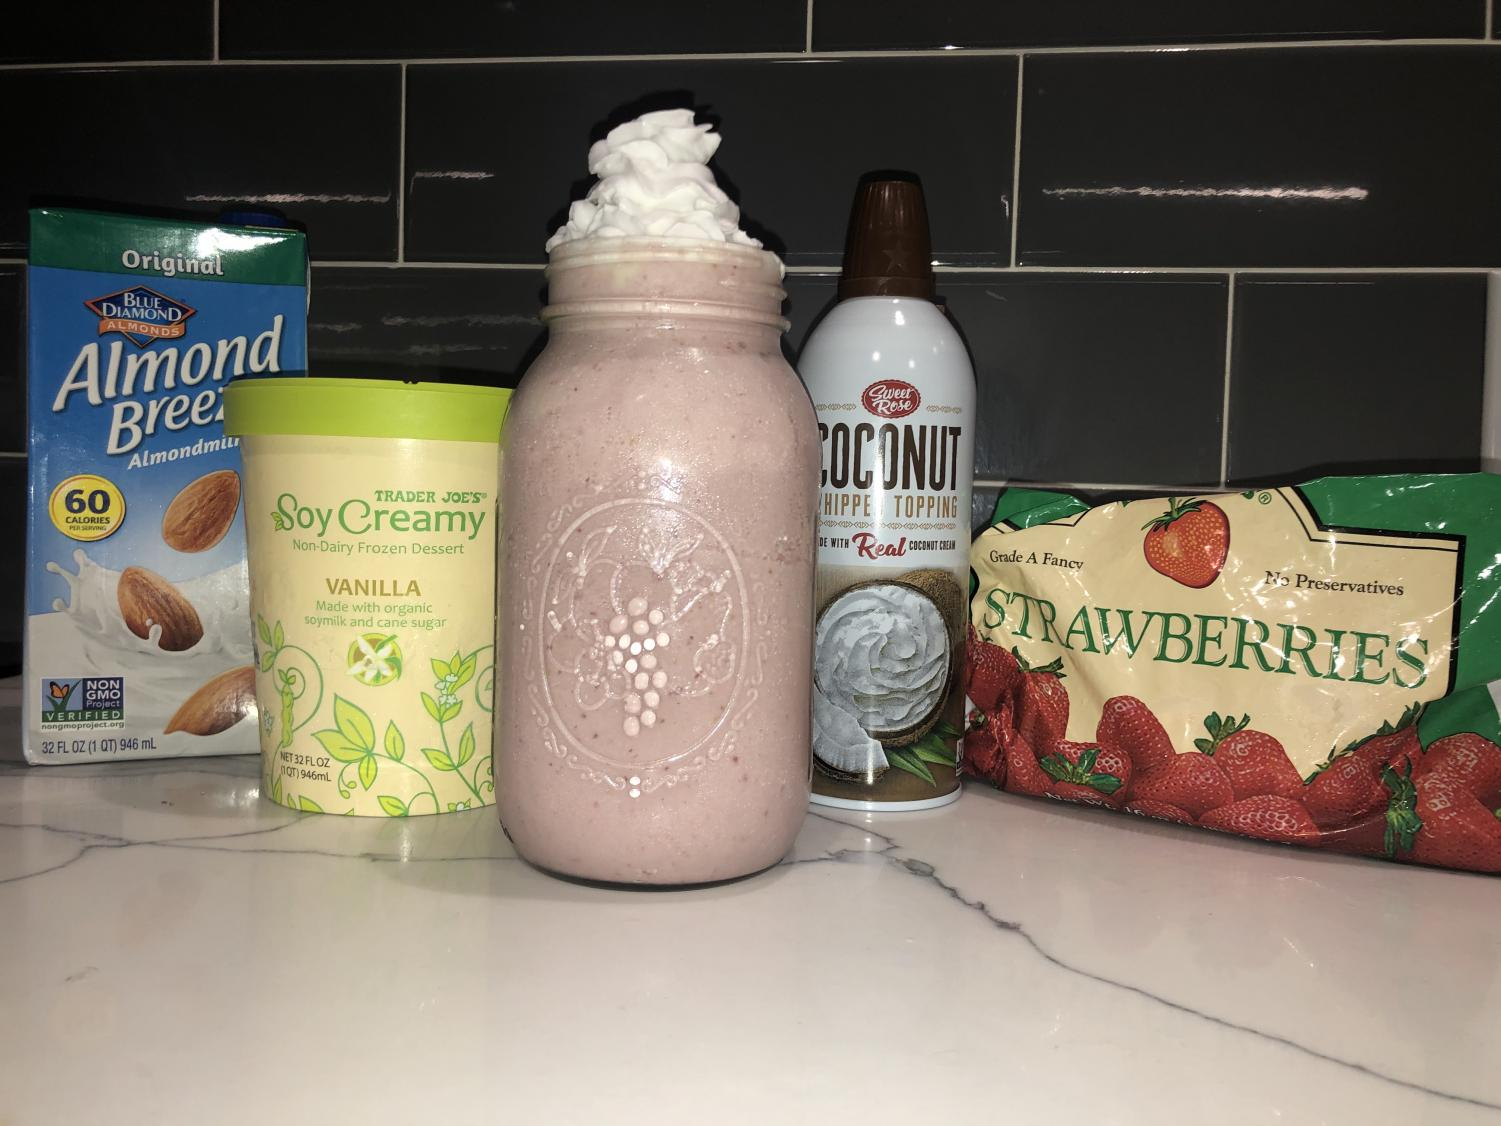 The ingredients and final product for the vegan strawberry milkshake.